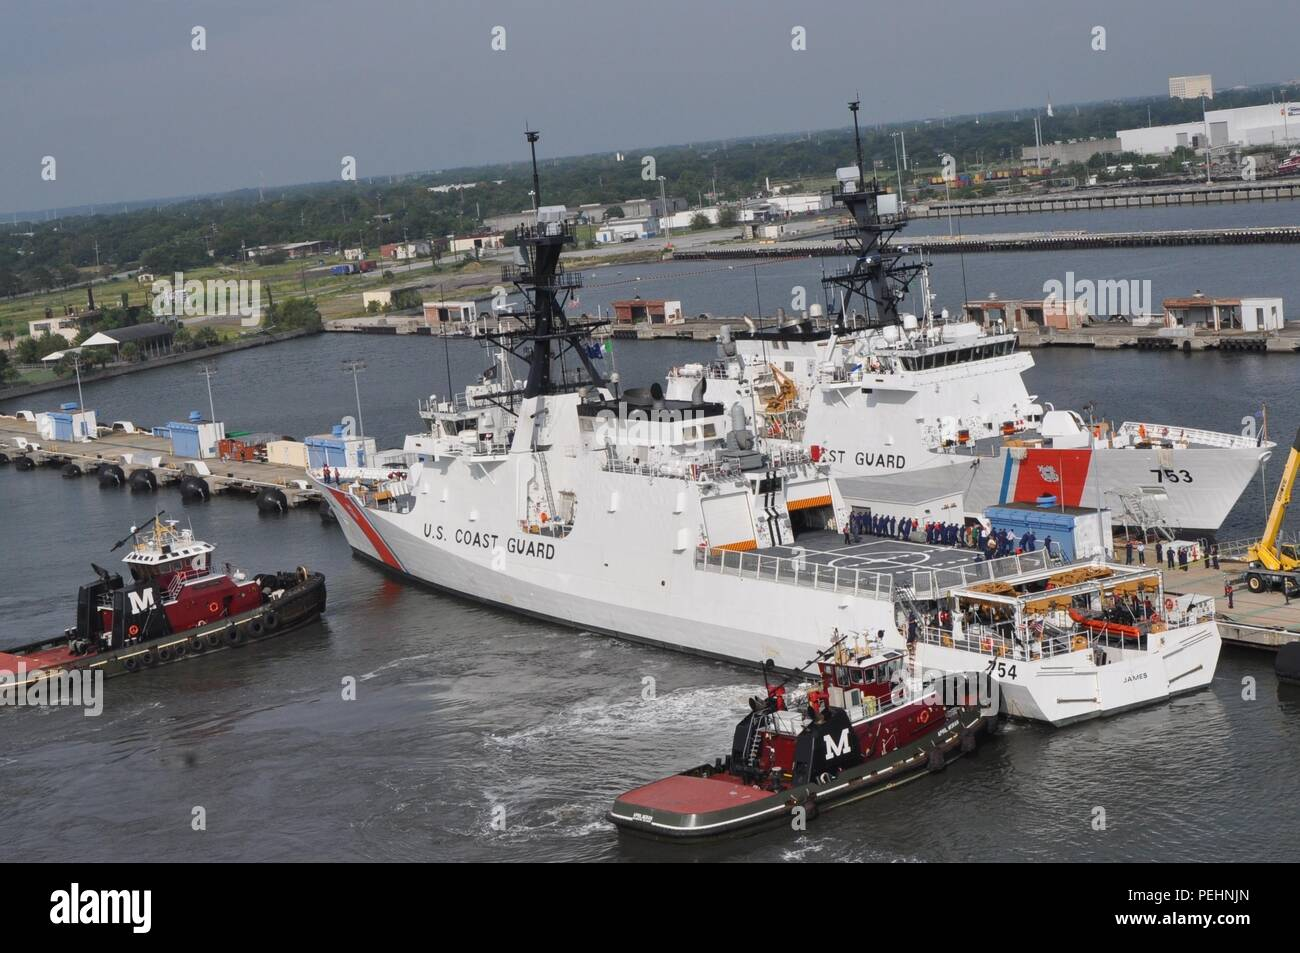 The U.S. Coast Guard Cutter James arrives at its new homeport of Charleston, S.C. Aug. 28, 2015. The James is the fifth of eight planned National Security Cutters – the largest and most technologically advanced class of cutters in the Coast Guard's fleet. (U.S. Coast Guard photo by Petty Officer 1st Class Melissa Leake) - Stock Image